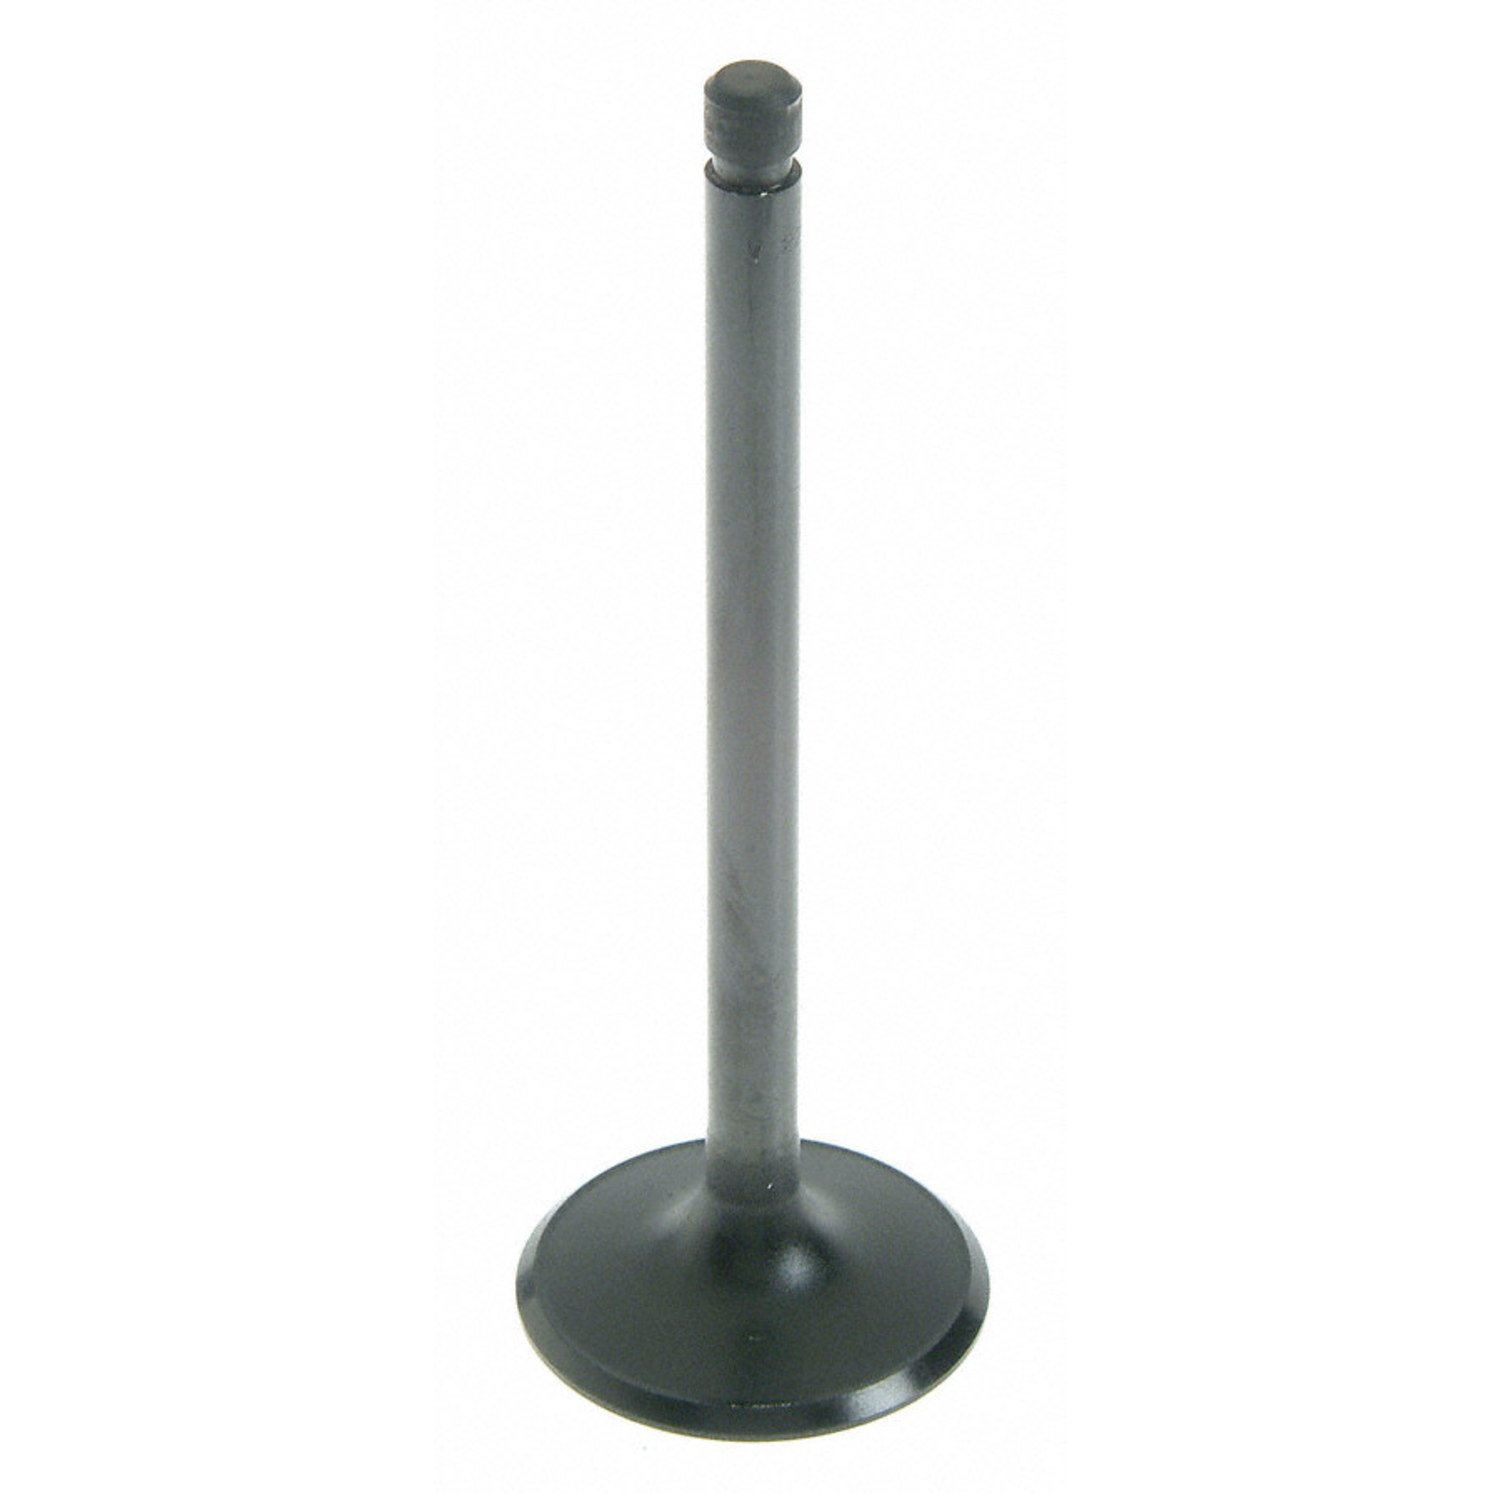 hight resolution of  1986 nissan d21 engine intake valve se v 2250